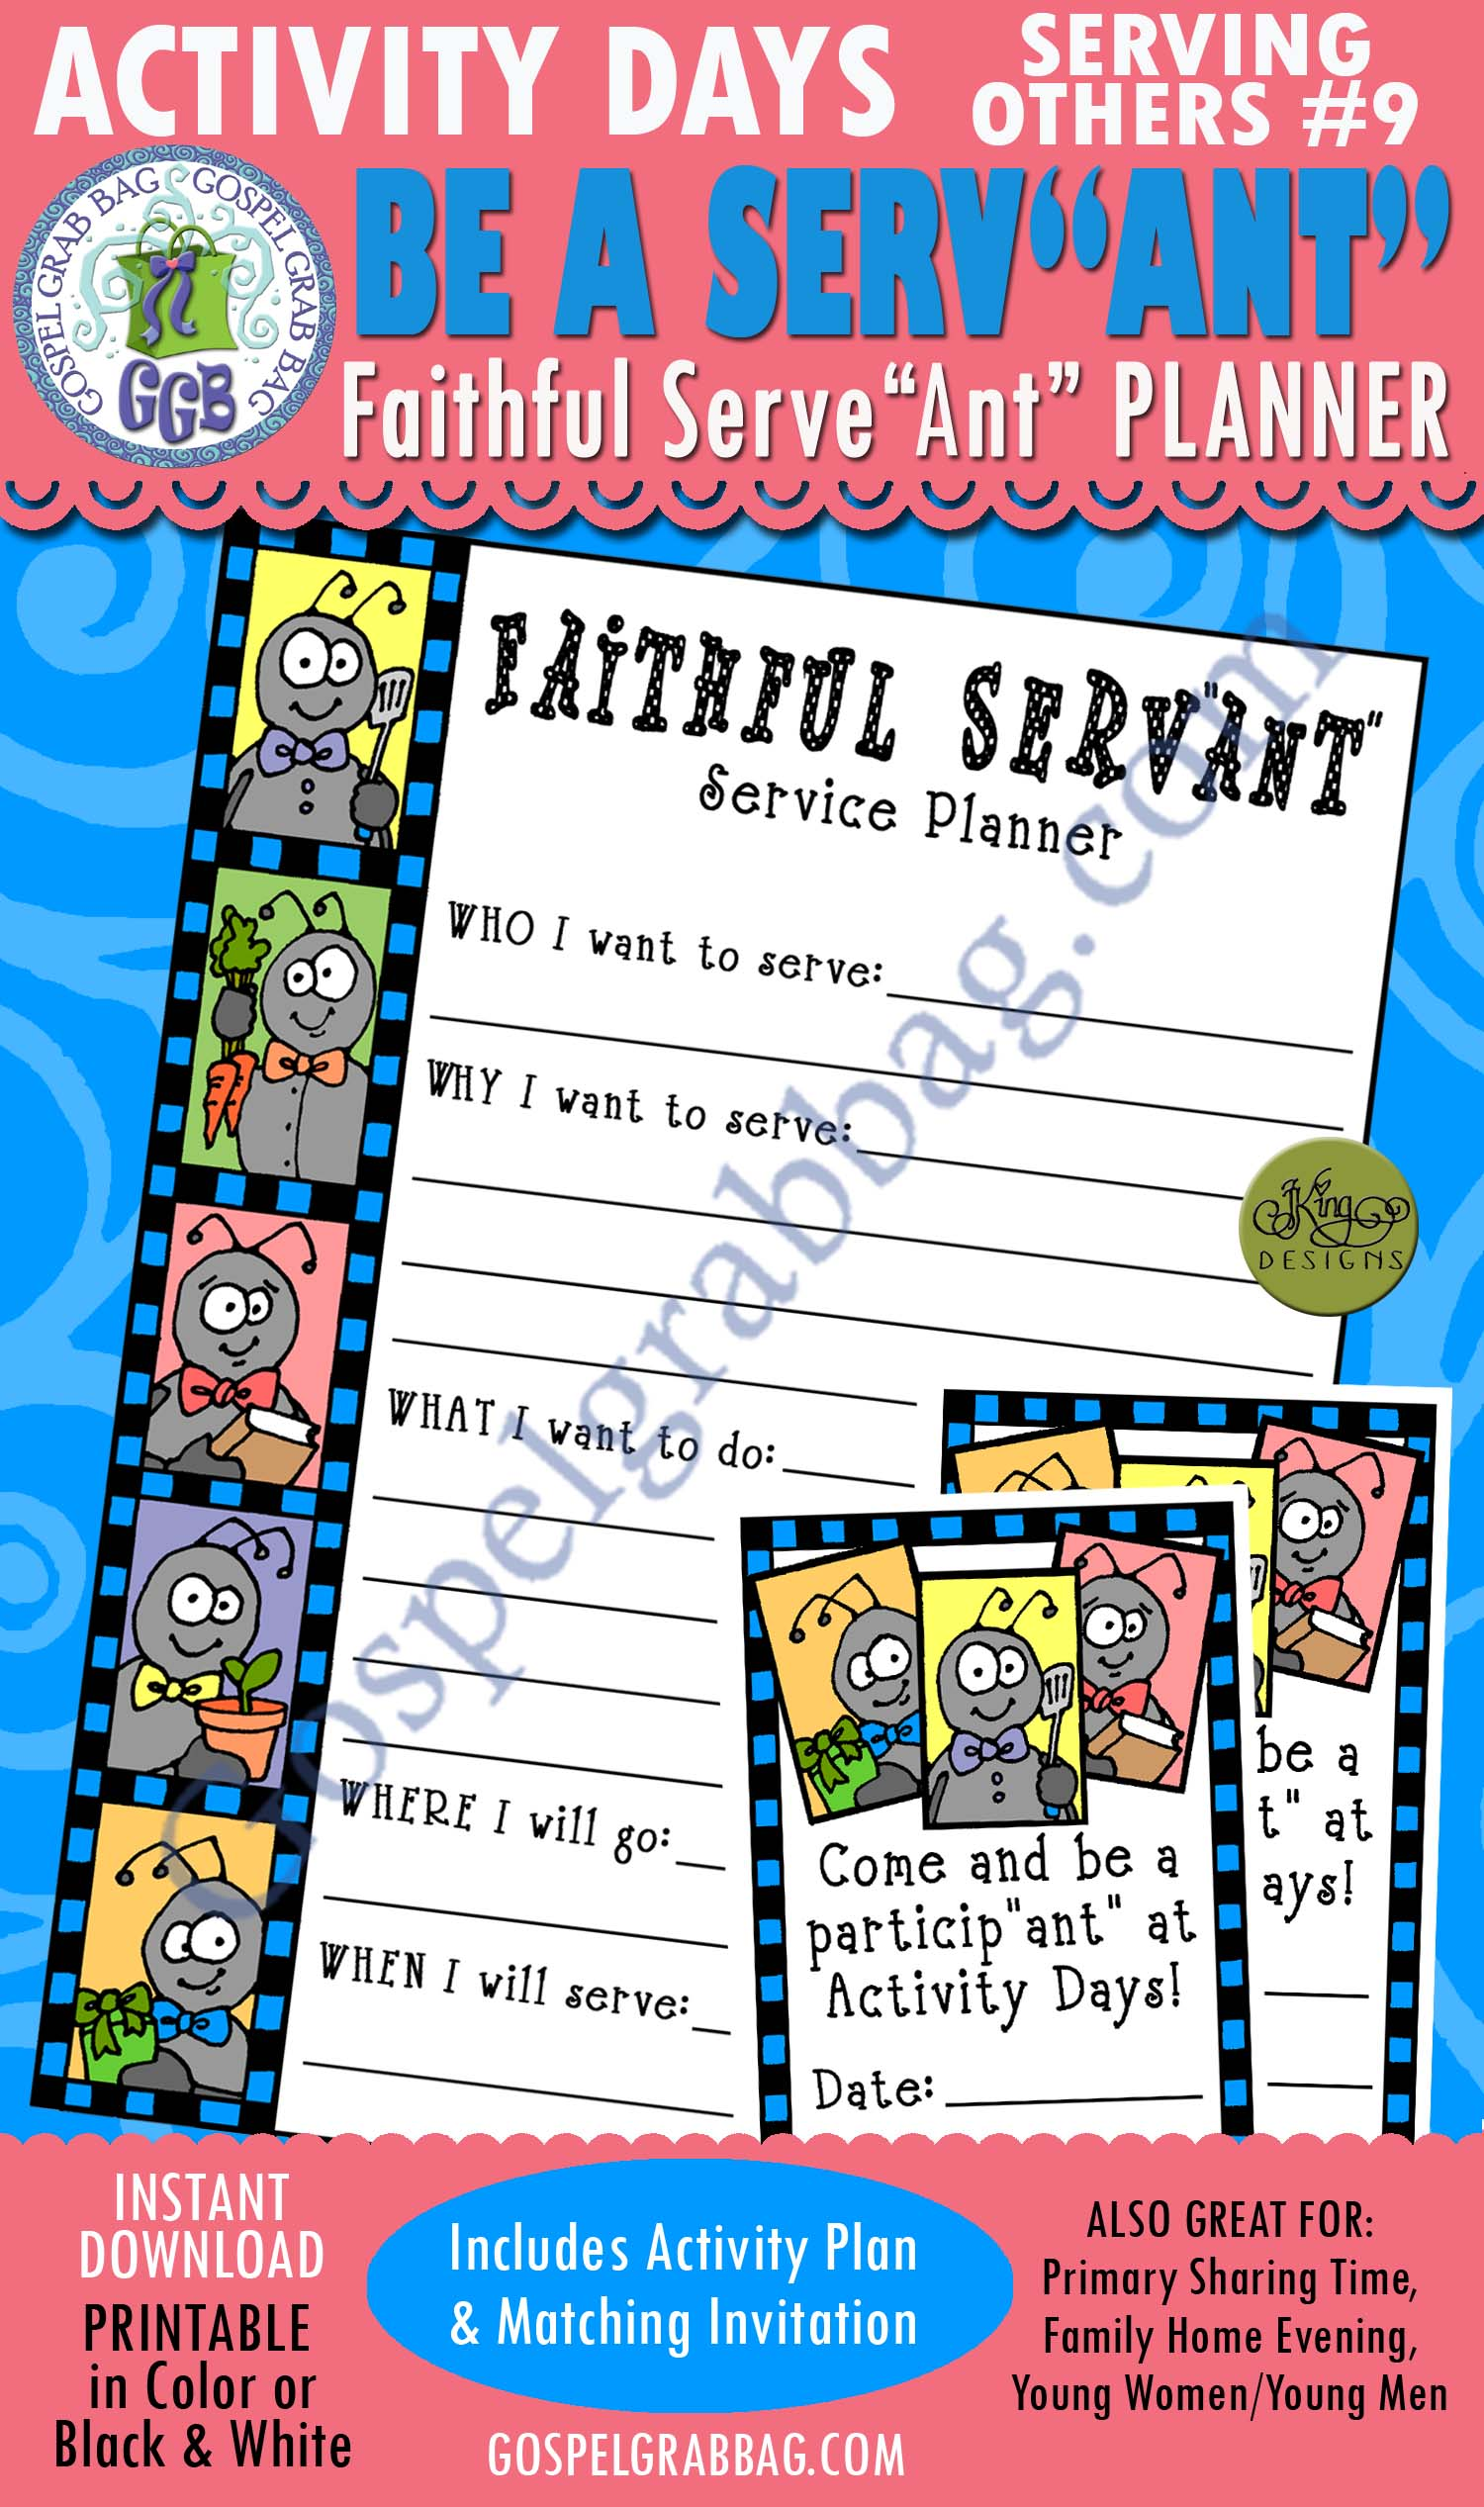 "$3.00 SERVICE: Activity Days: Serving Others, Goal 10 Invitation, Activity: Faithful Serv""ant"" Service Planner, GospelGrabBag.com"